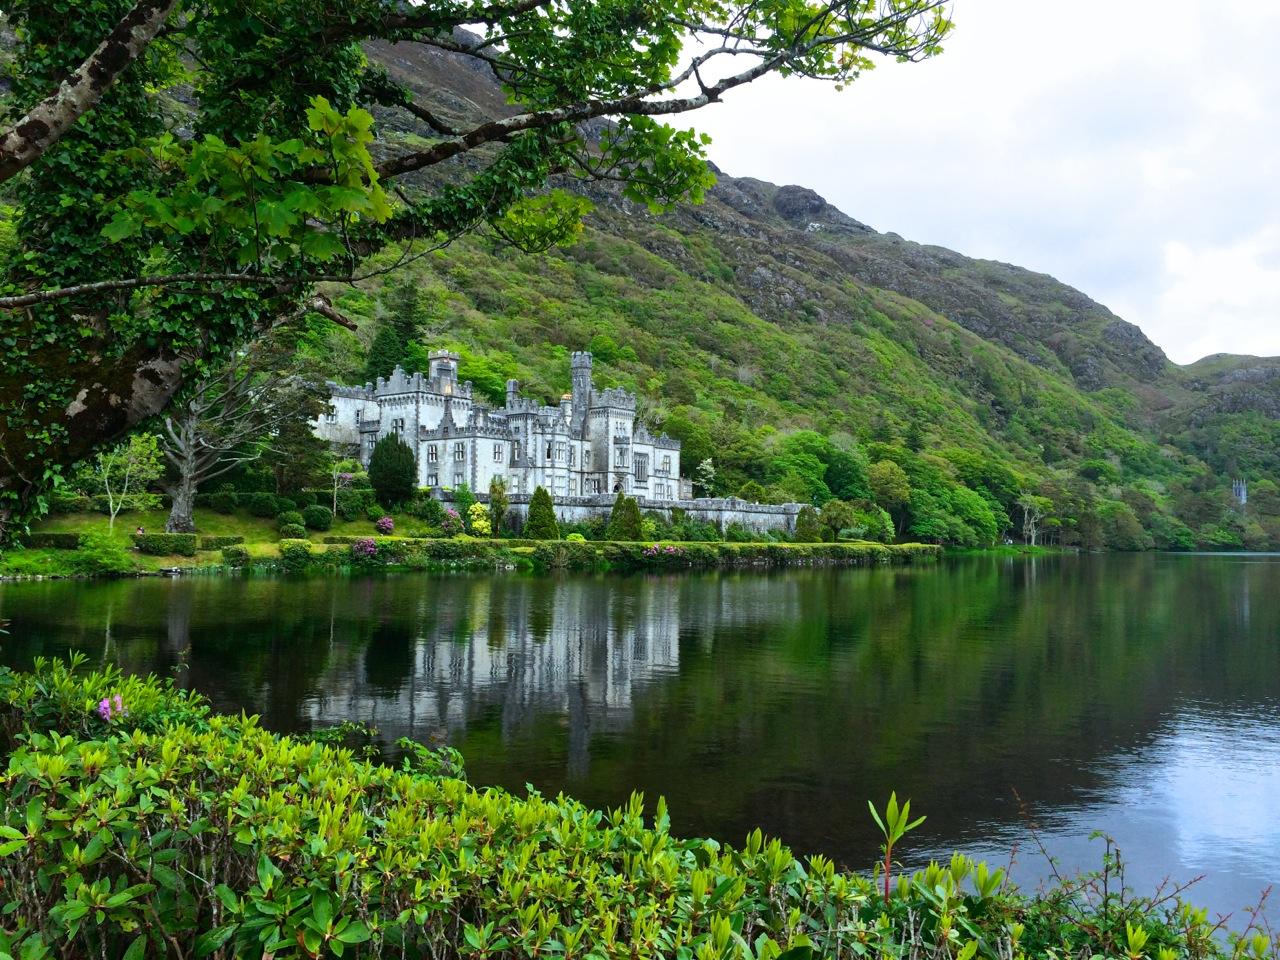 Kylemore_Abbey_Ireland